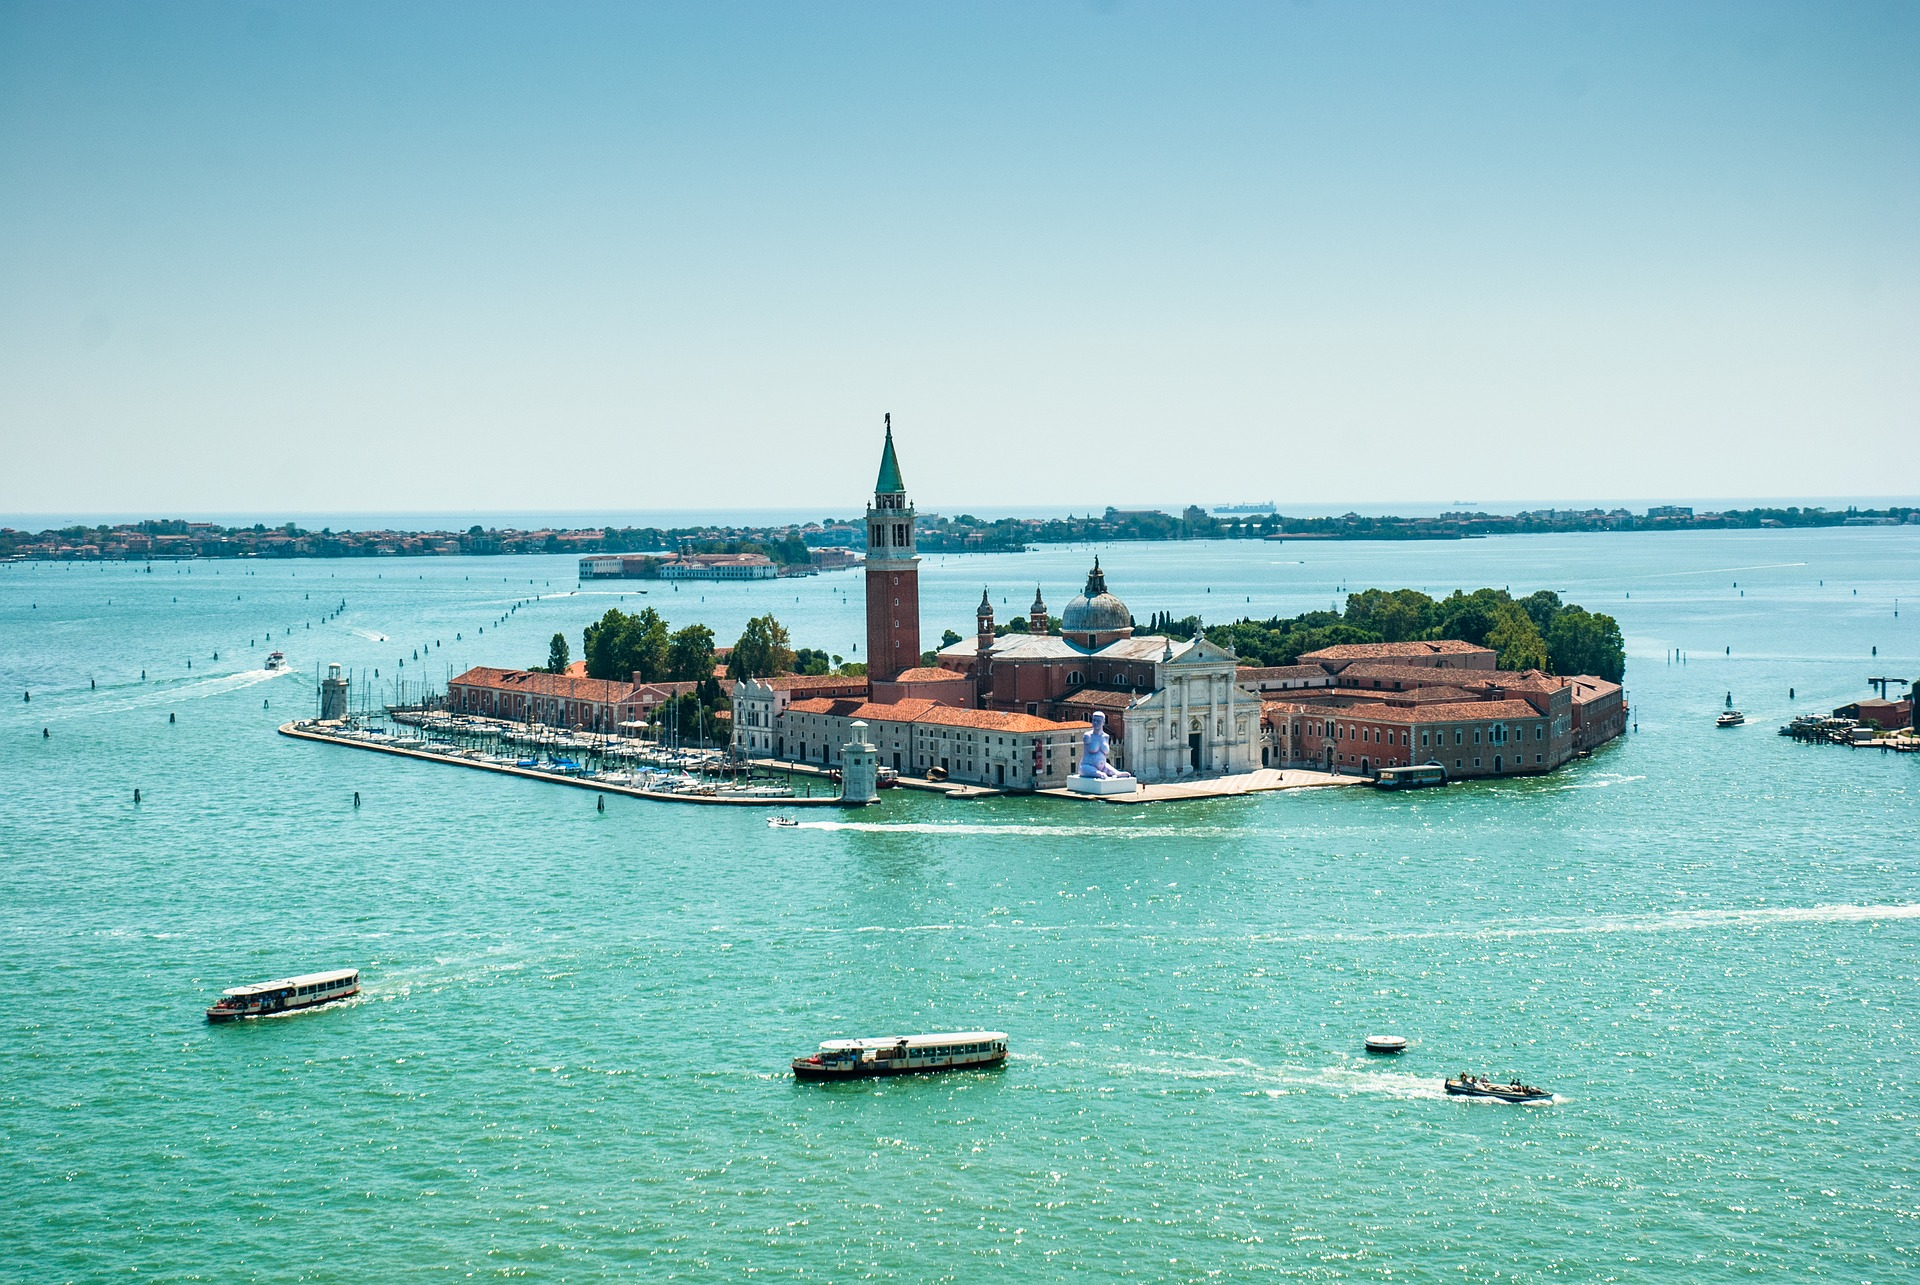 Murano Island in the Venetian Lagoon,Italy